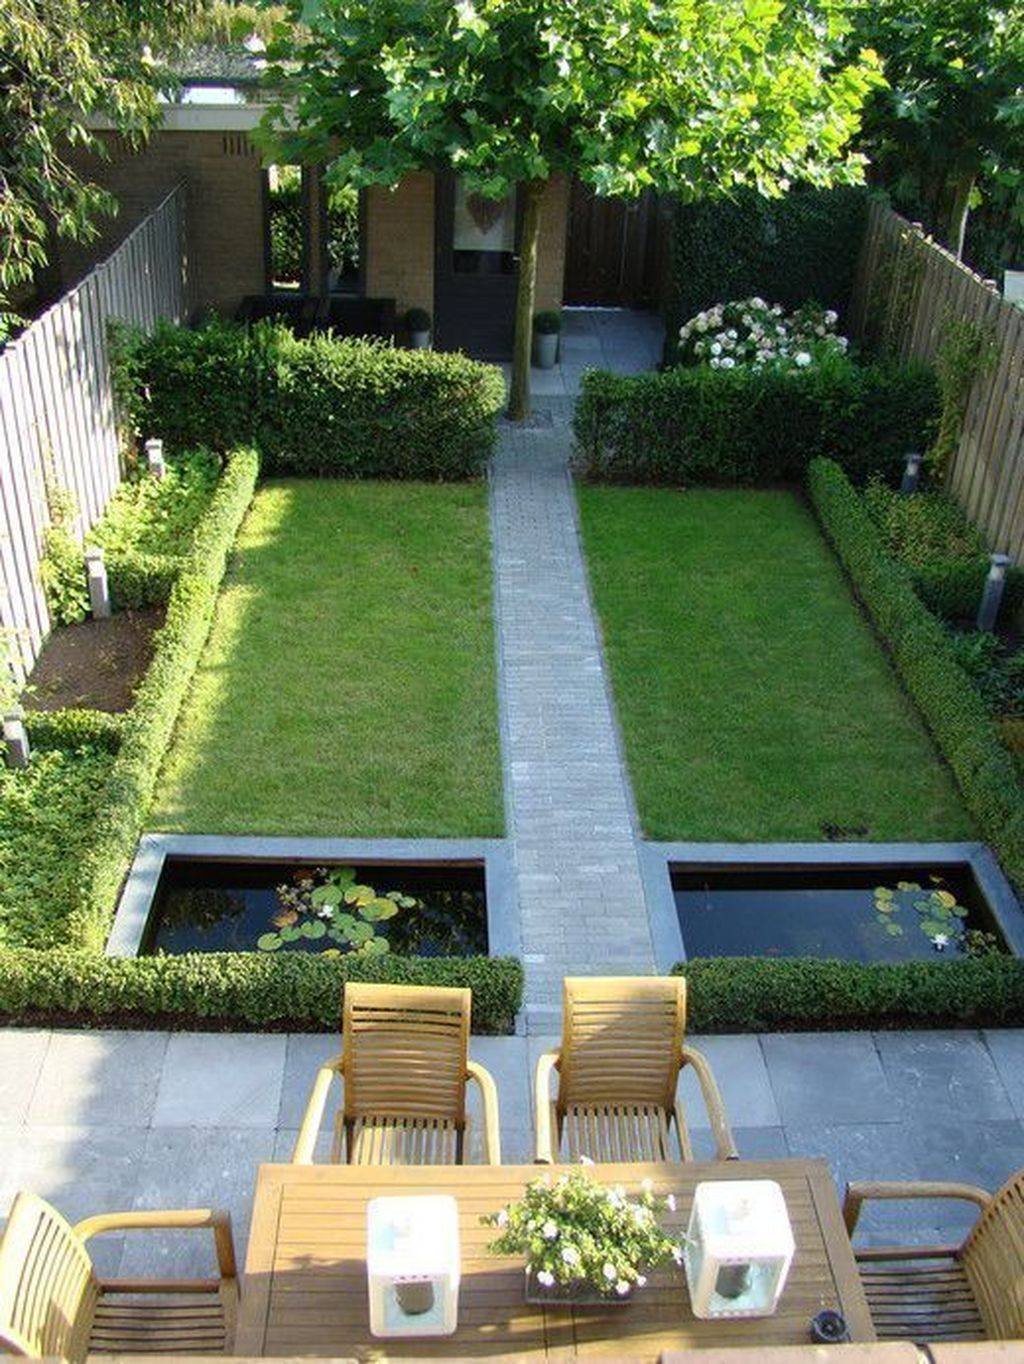 Backyard Landscaping Ideas Surf Landscapes And Gardens Discover New Landscape Designs And Ideas To Small Backyard Landscaping Modern Garden Design Backyard New house backyard design